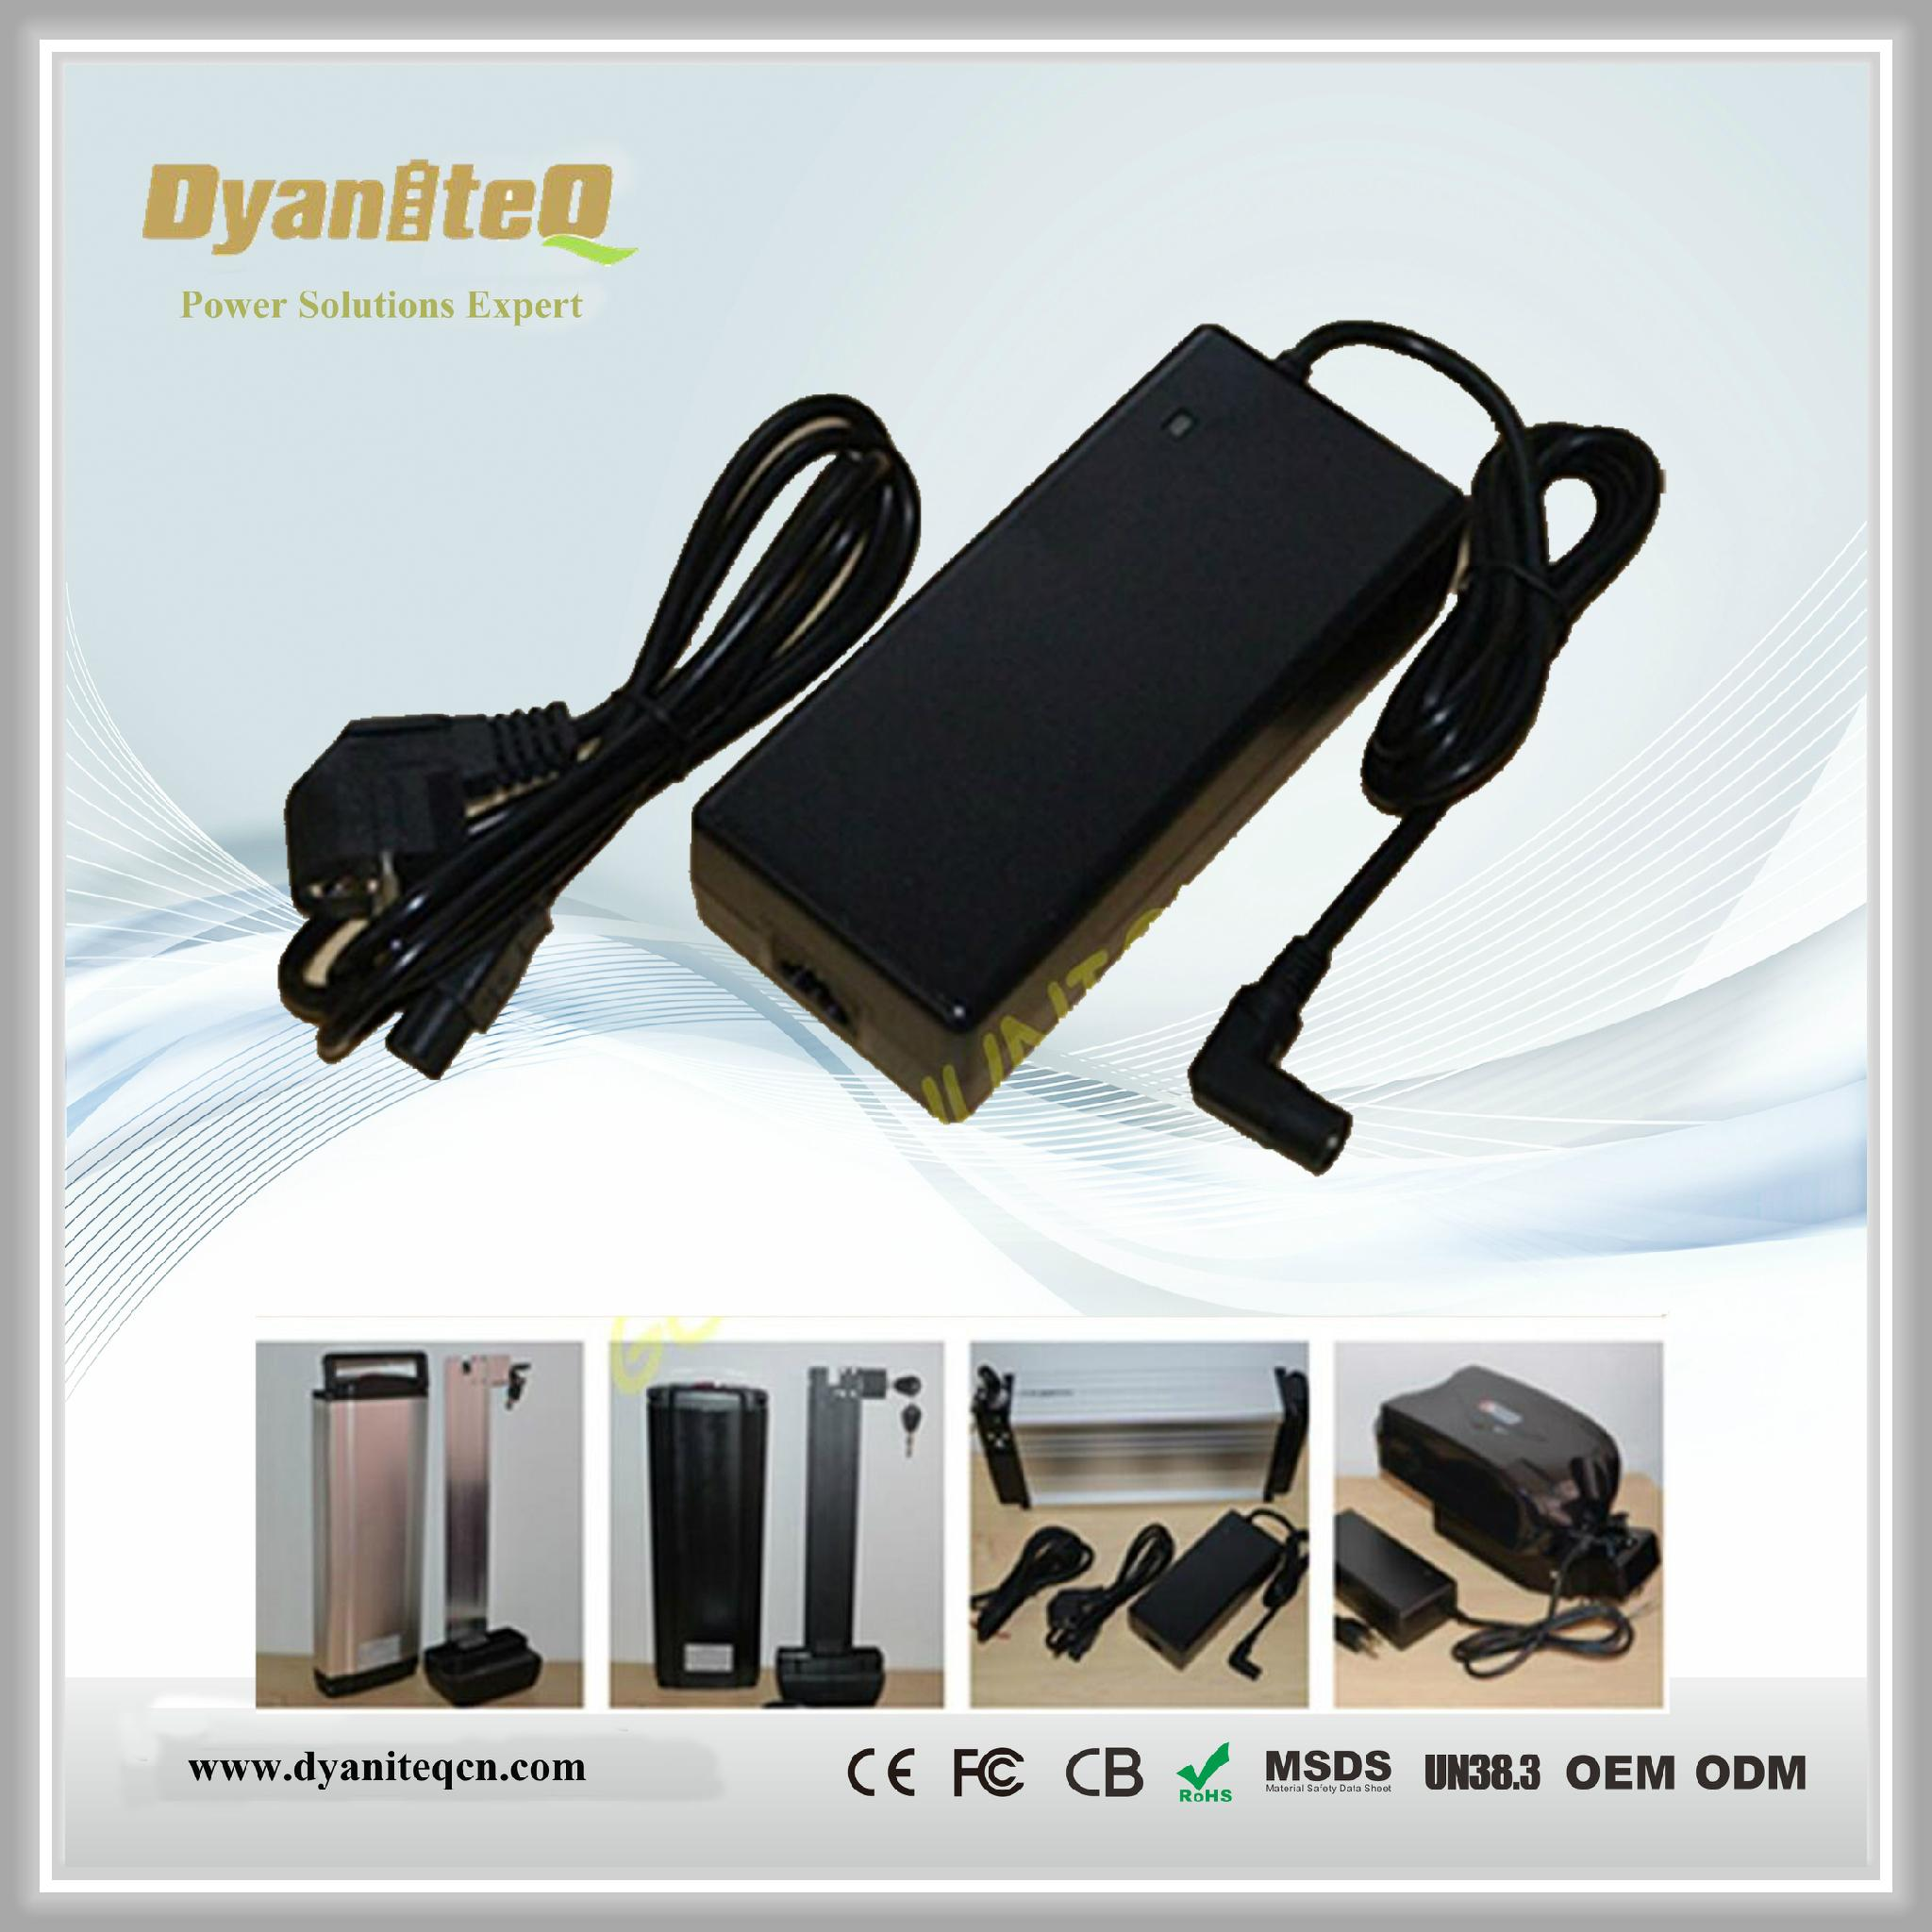 Vacuum Cleaner Charger 29.4V 2A with UL GS PSE CE approval 6